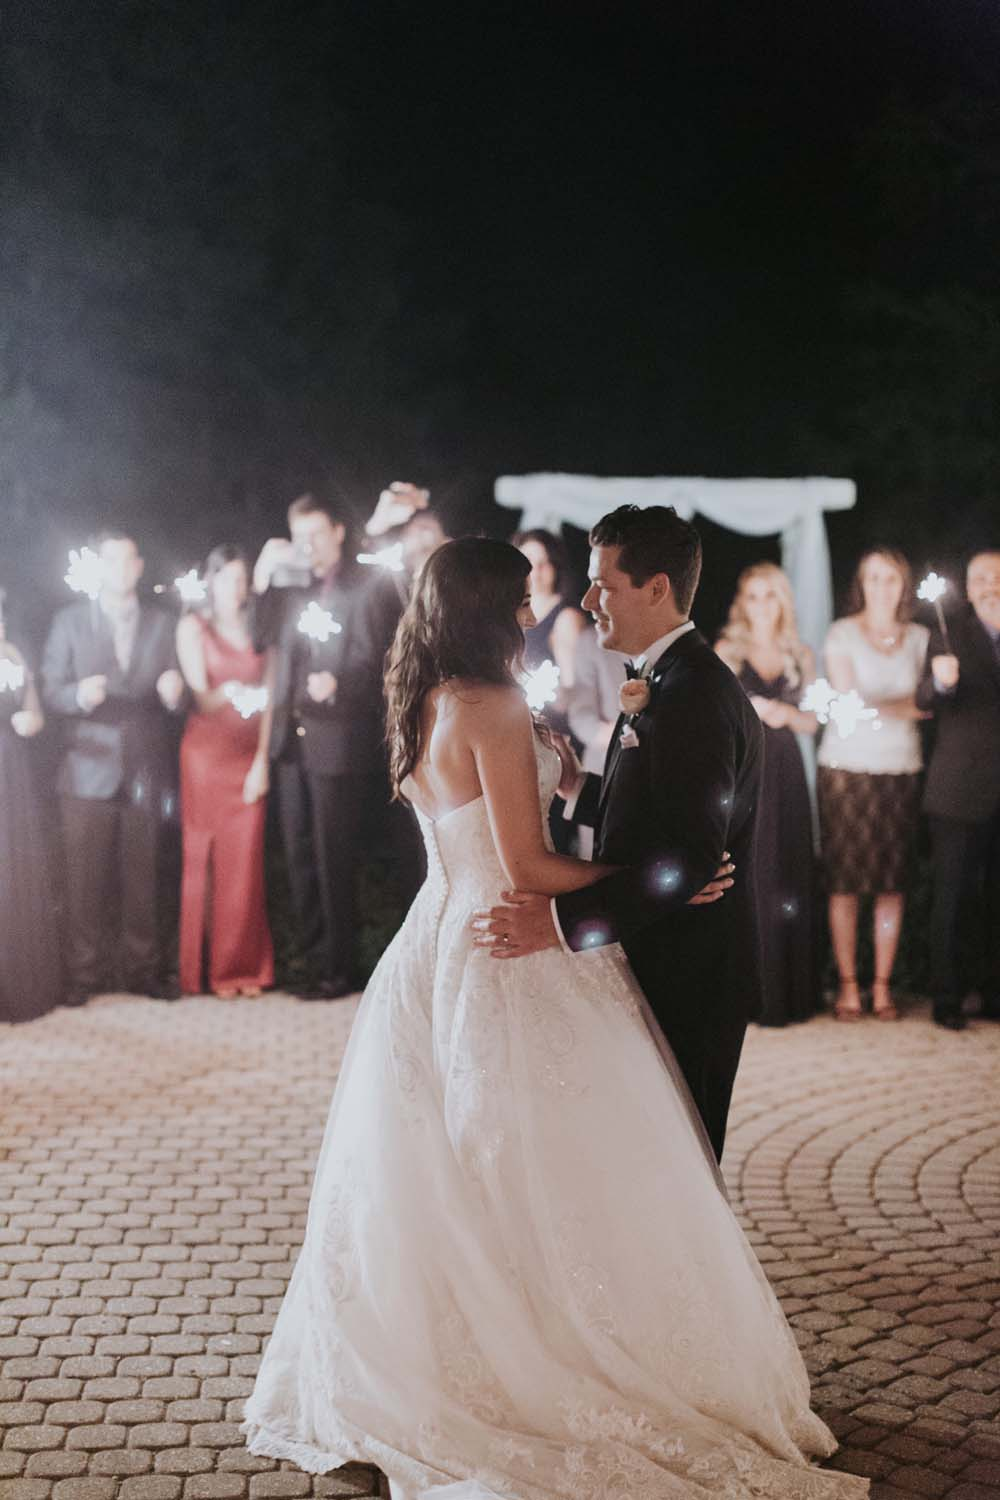 A Rustic, Whimsical Wedding in Tottenham - First dance